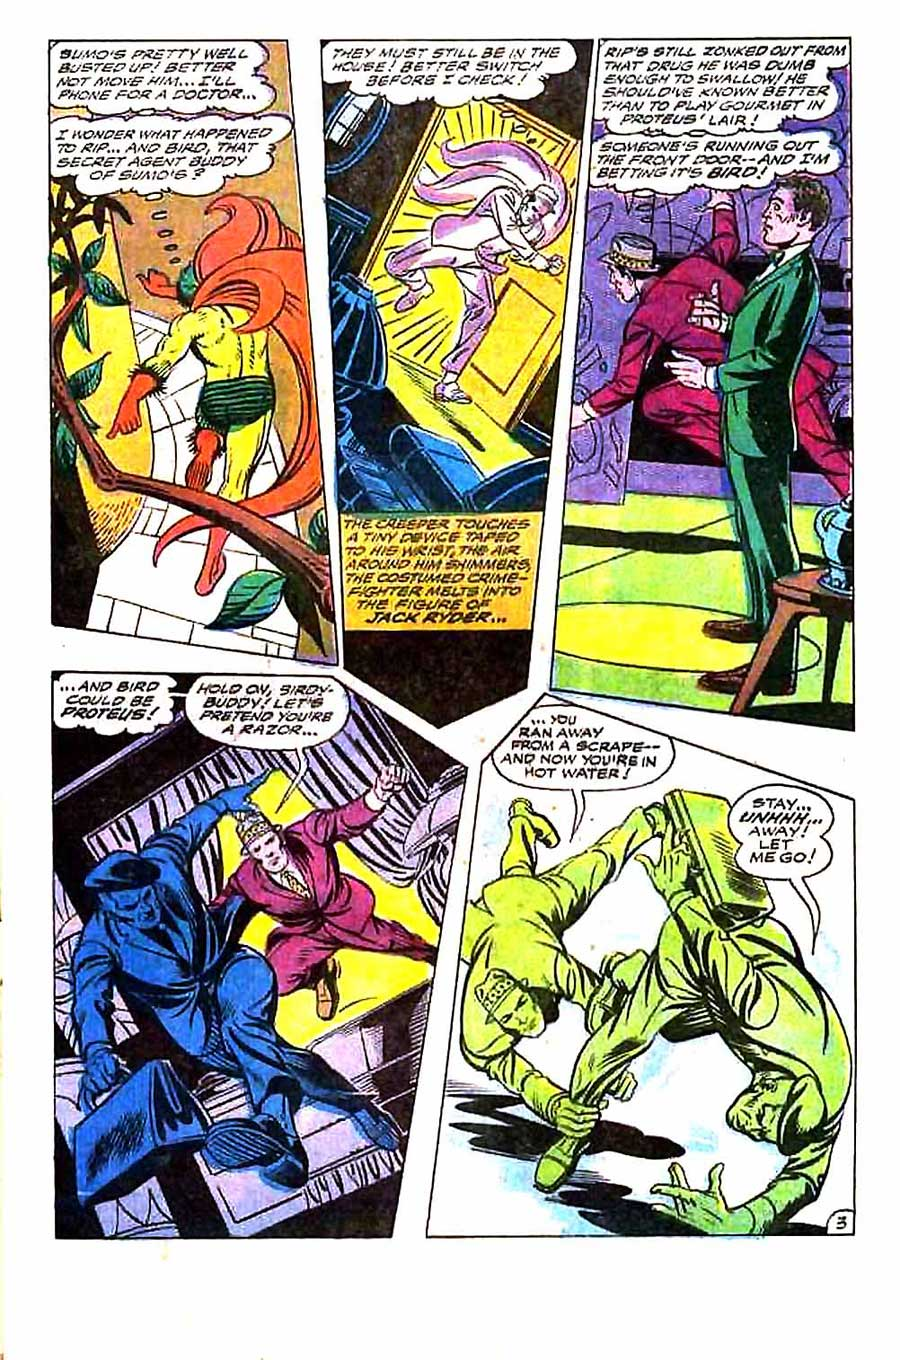 Beware the Creeper v1 #5 dc 1960s silver age comic book page art by Steve Ditko